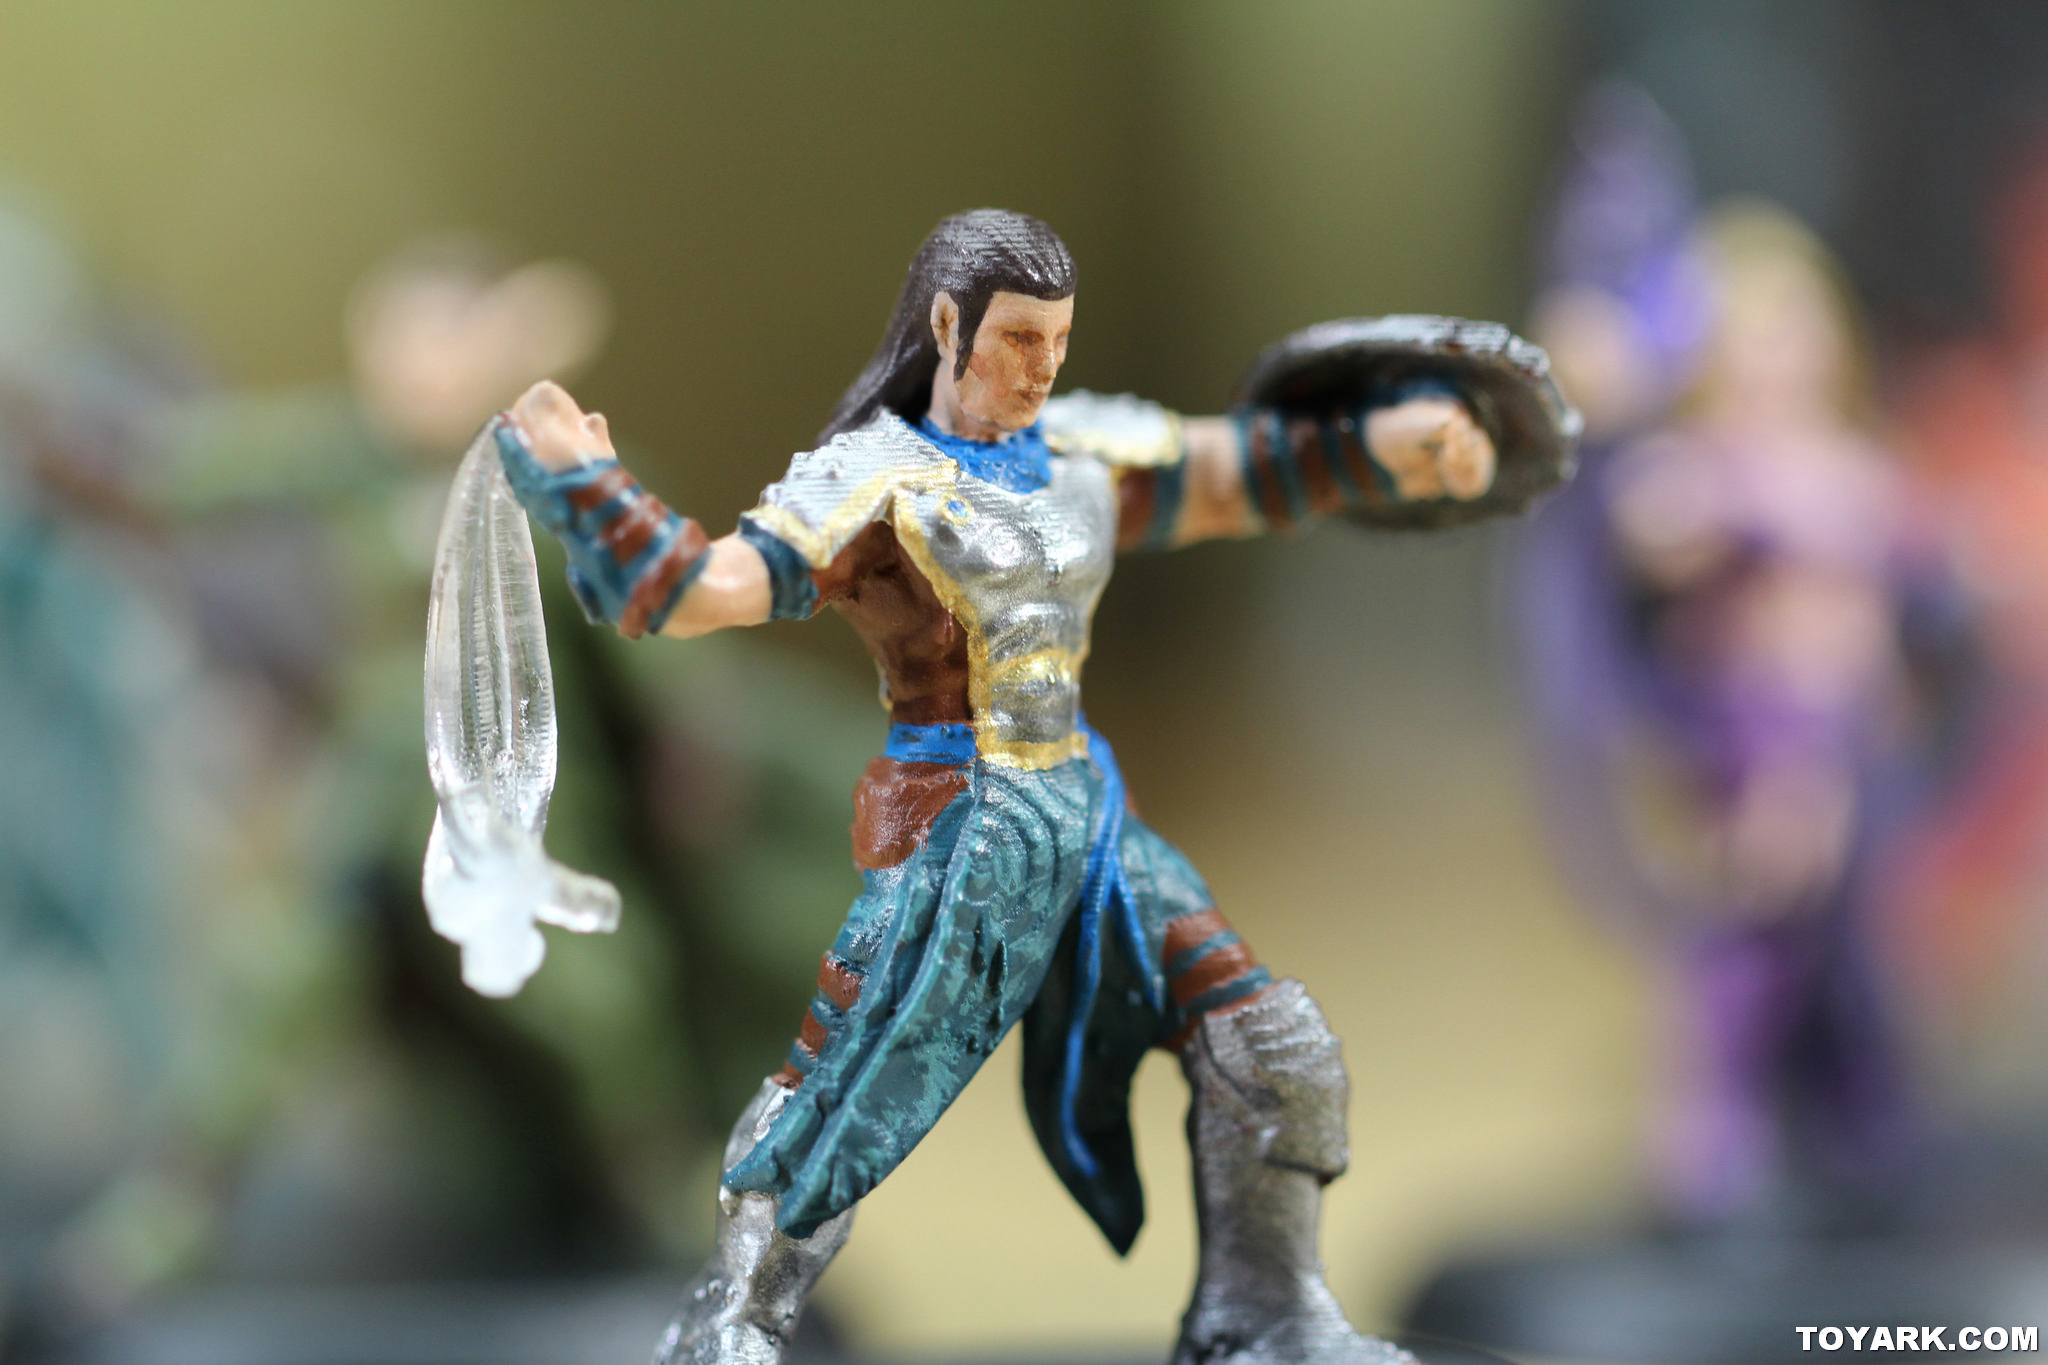 Toy Fair 2015 MAGIC: THE GATHERING ARENA OF THE ... Planeswalker Arena Miniatures Size